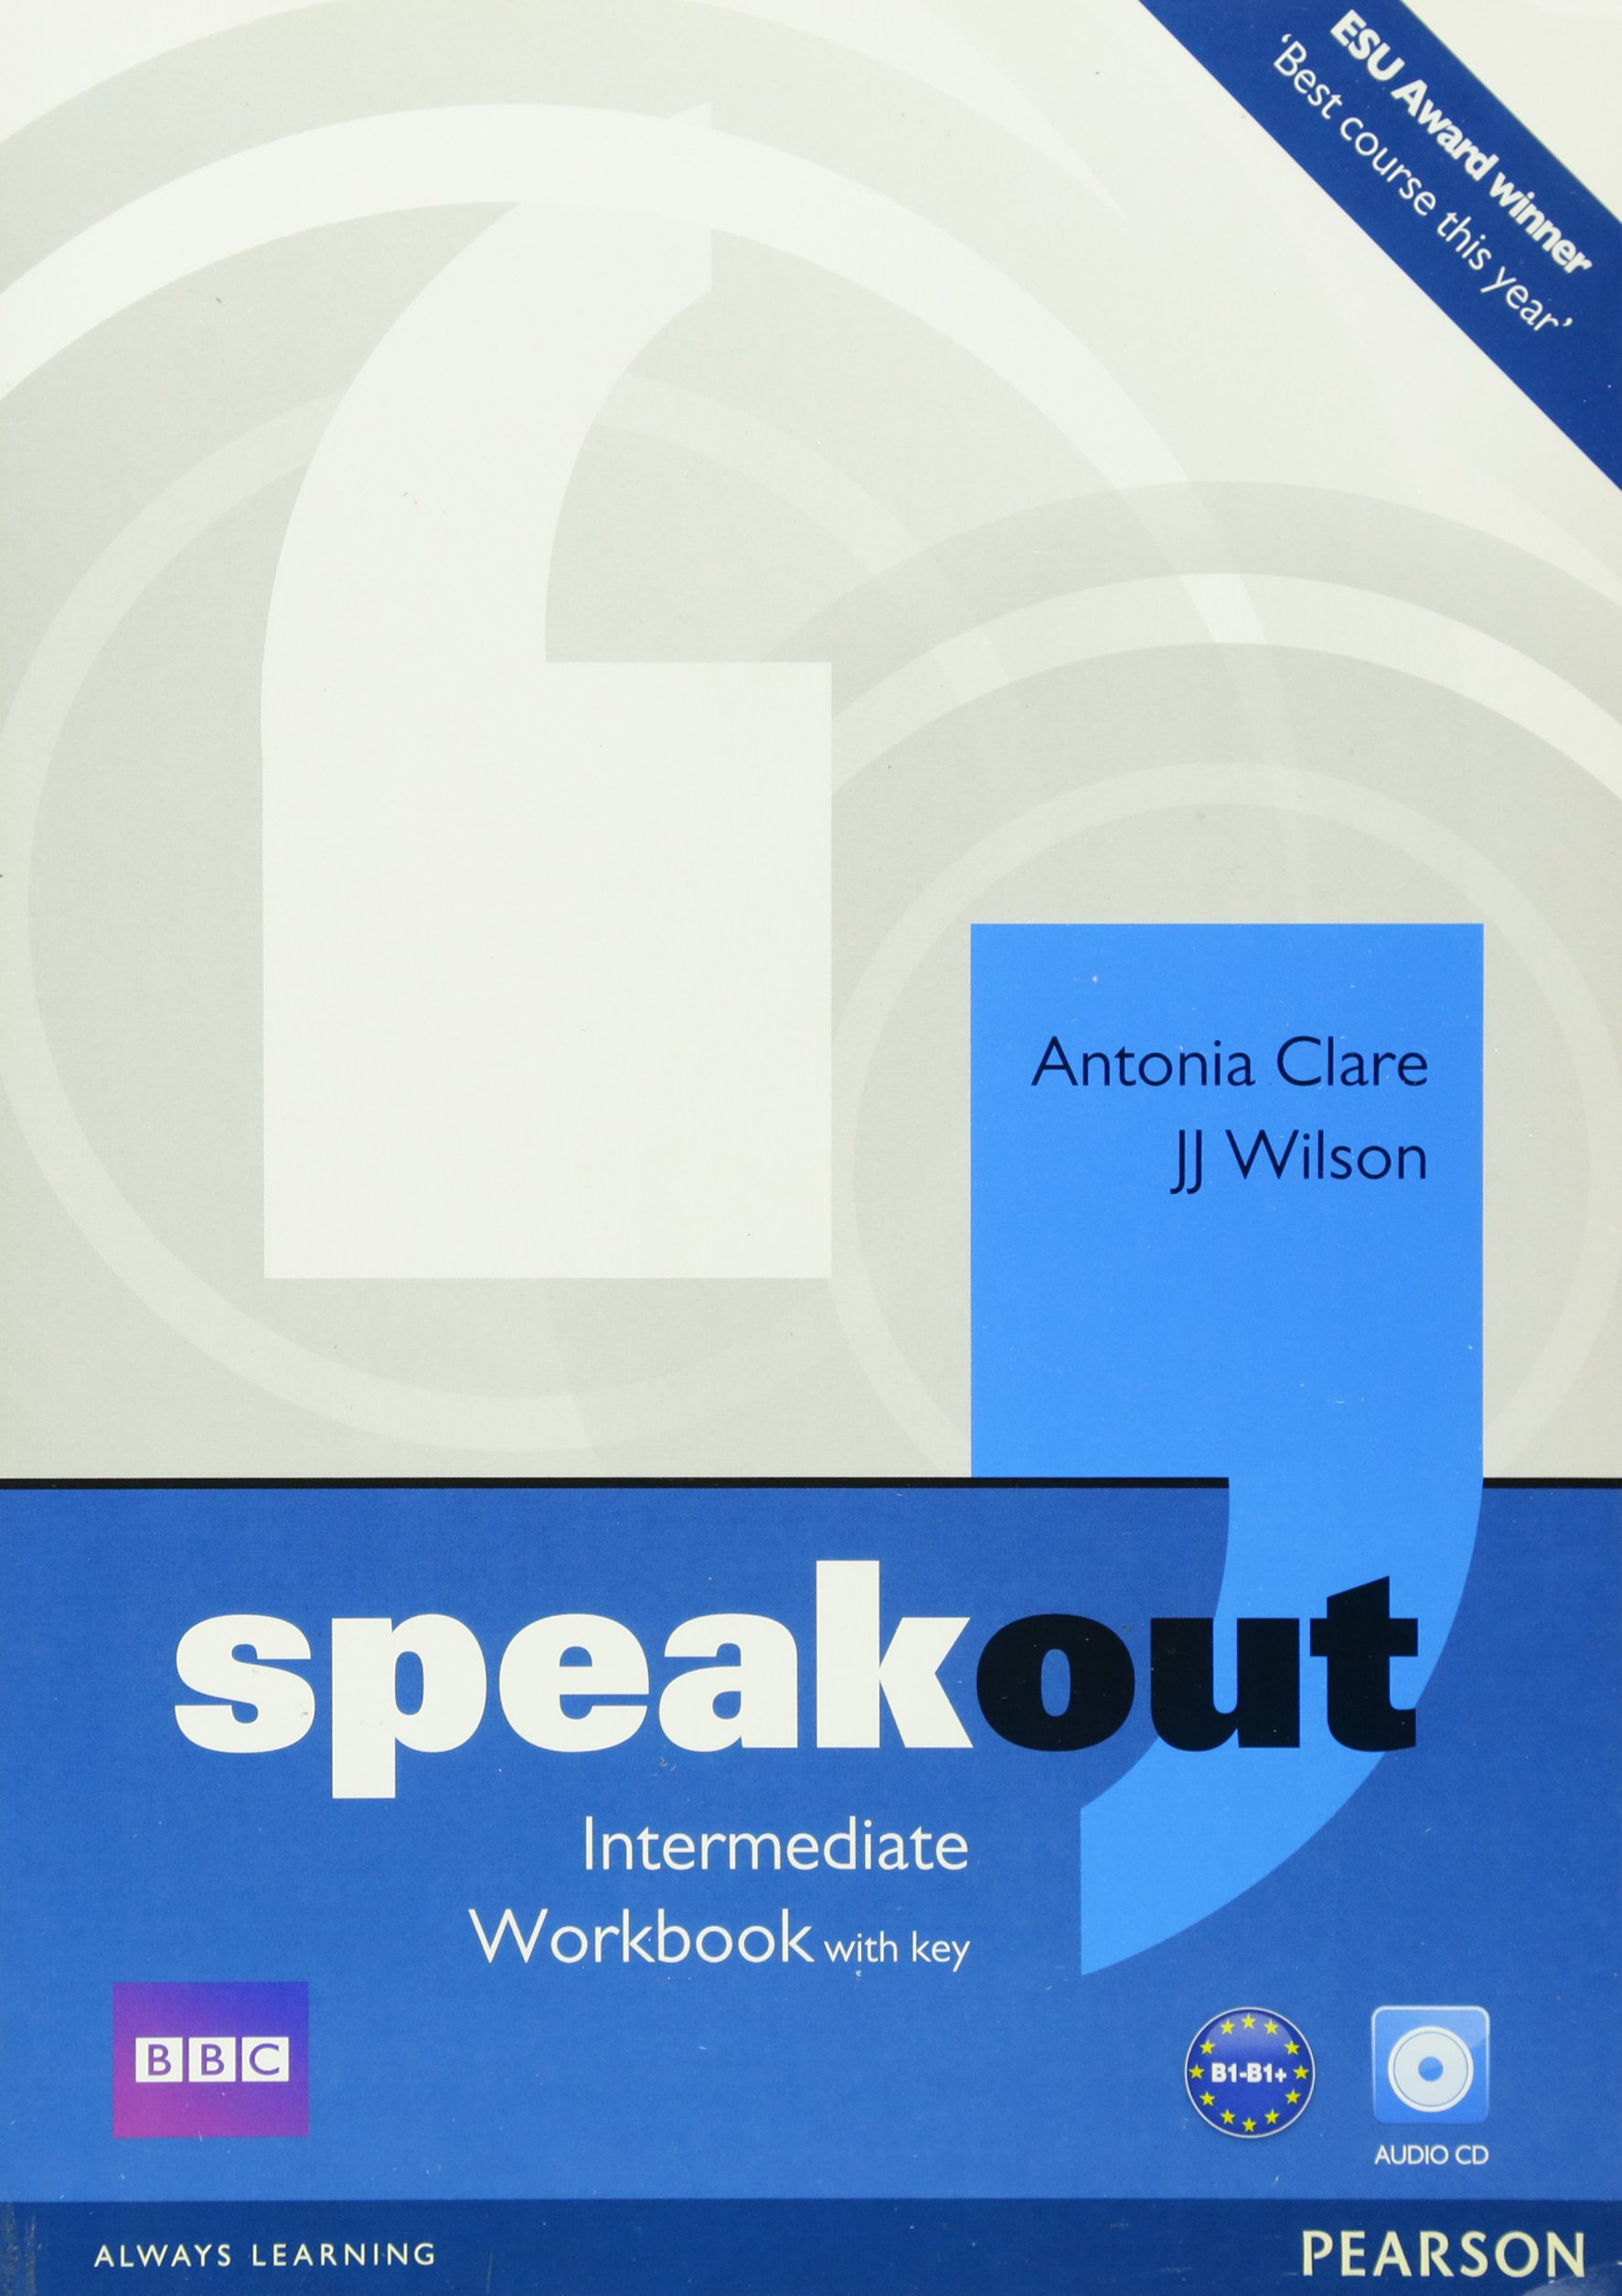 Speakout intermediate workbook with key and audio cd pack amazon speakout intermediate workbook with key and audio cd pack amazon antonia clare mr j j wilson 9781408259498 books fandeluxe Image collections